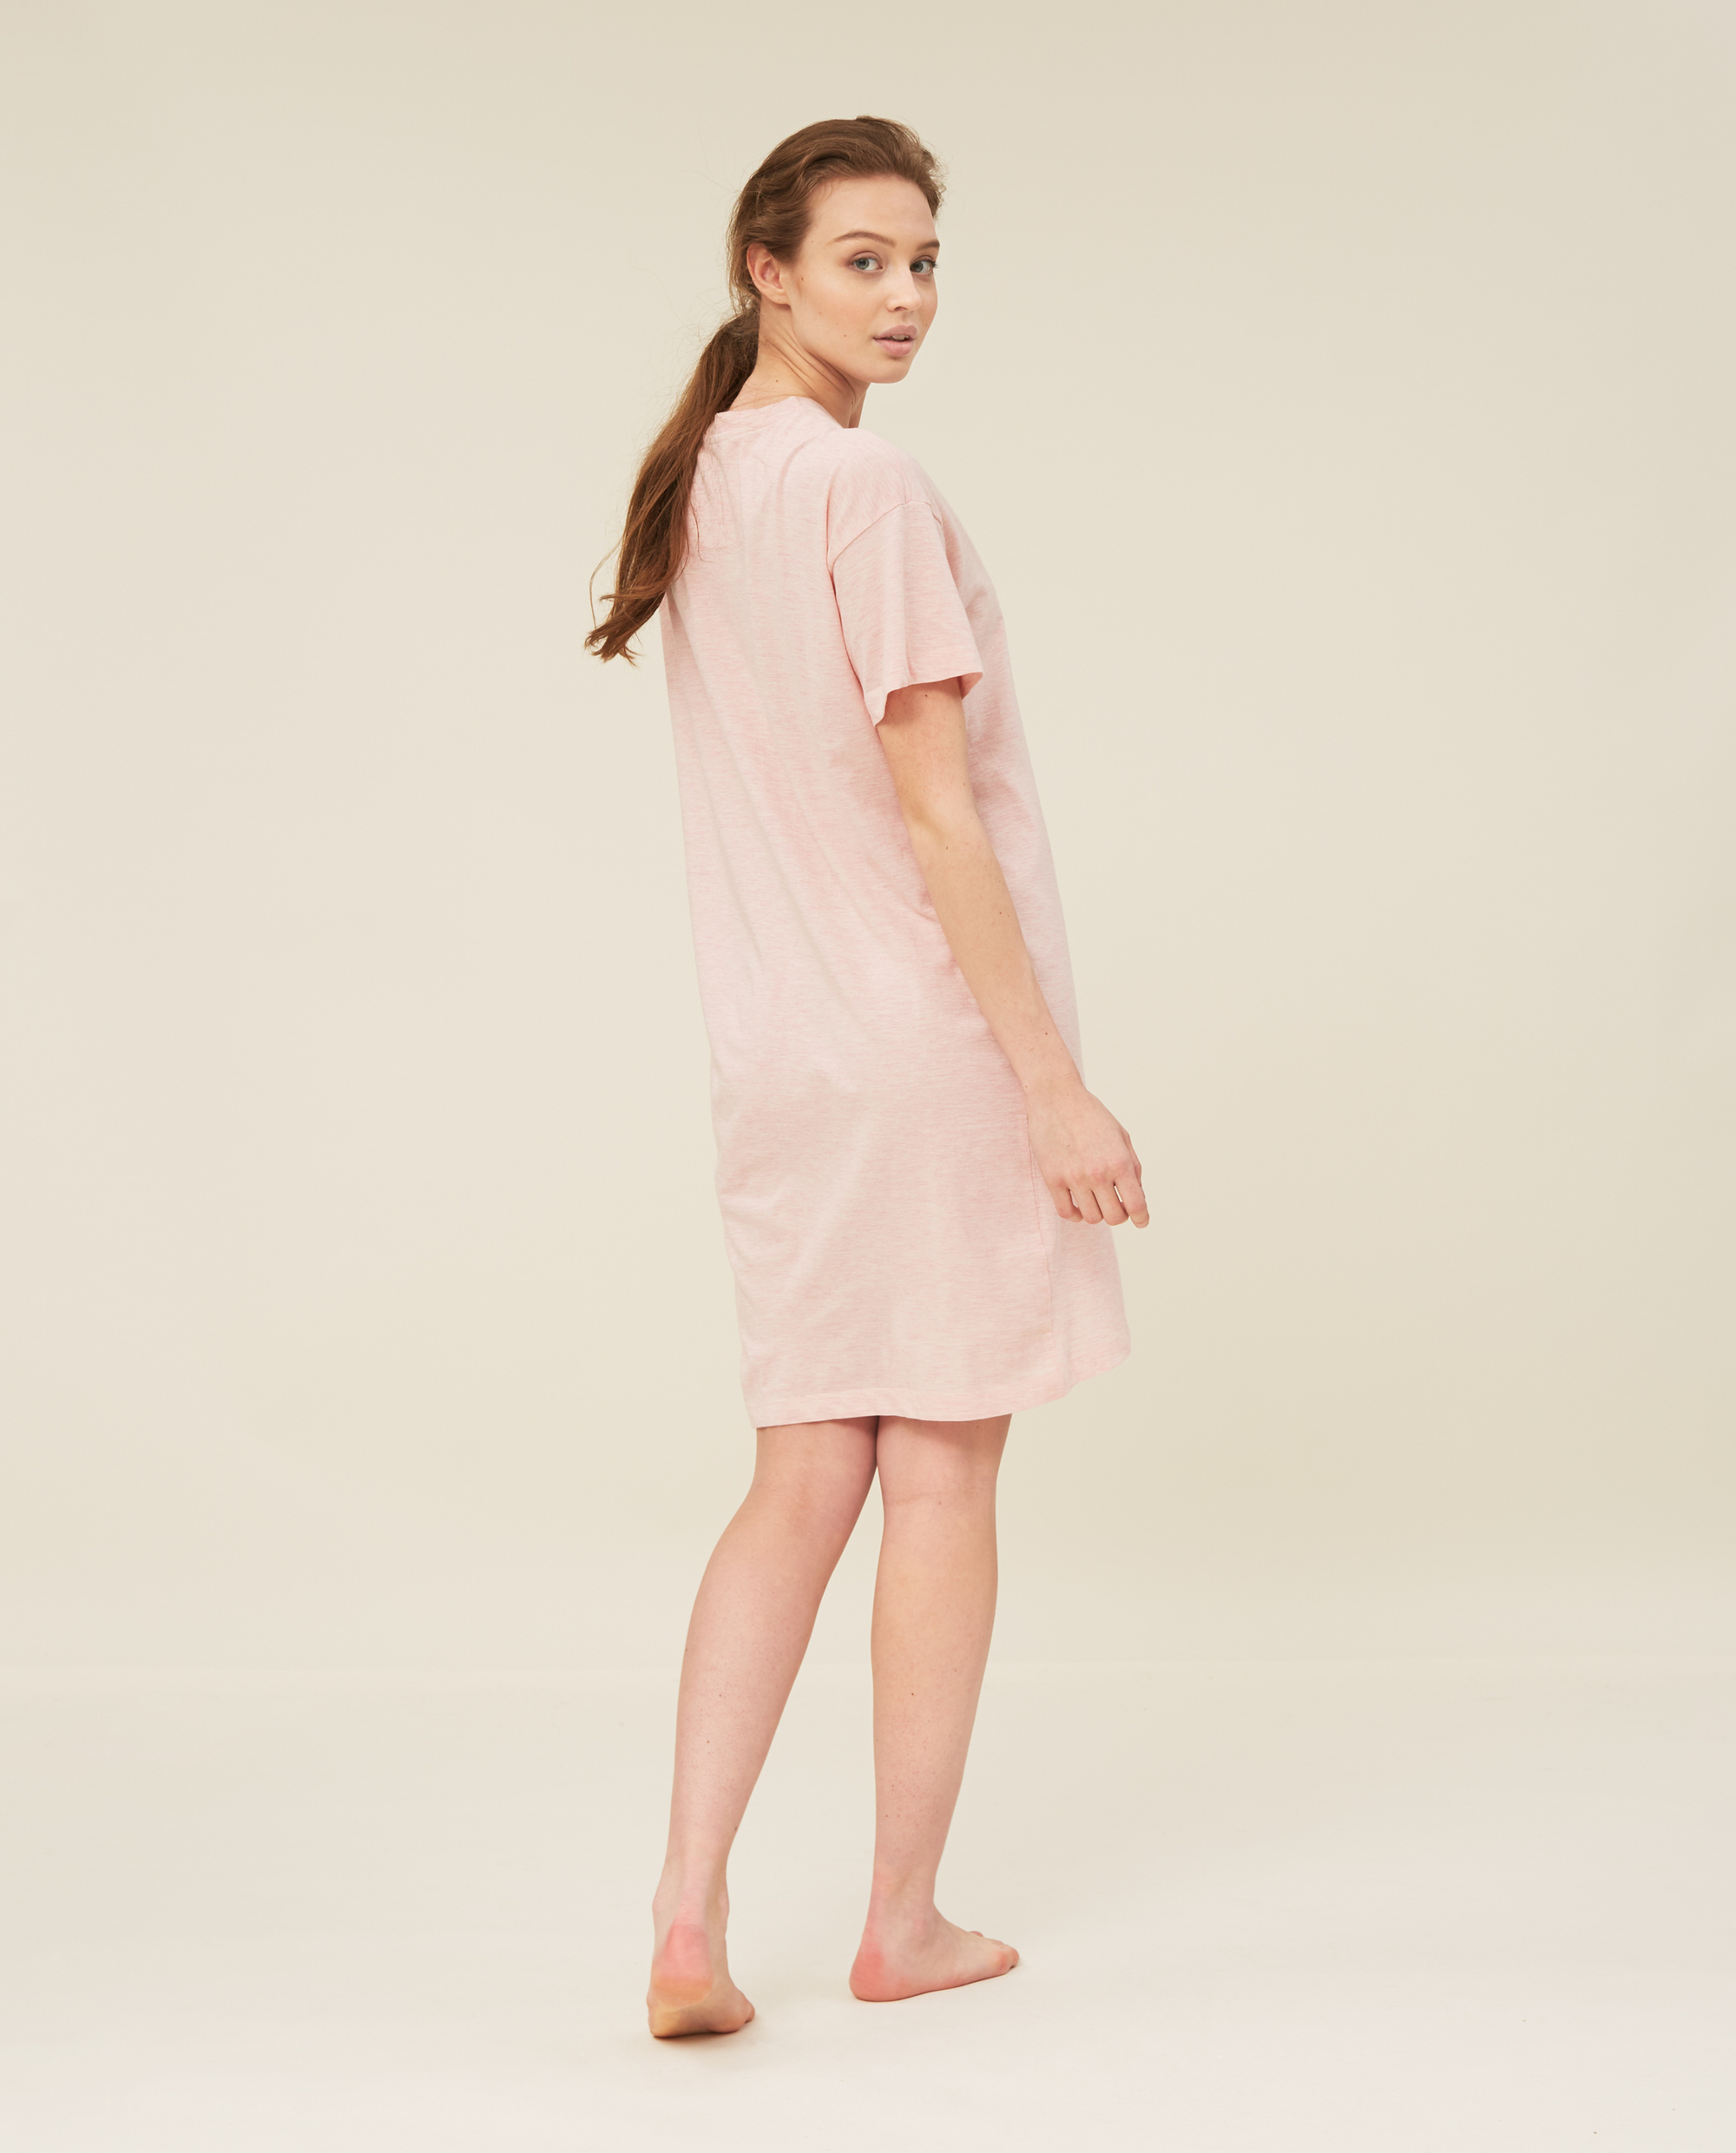 Women's Organic Cotton Nightgown Pink